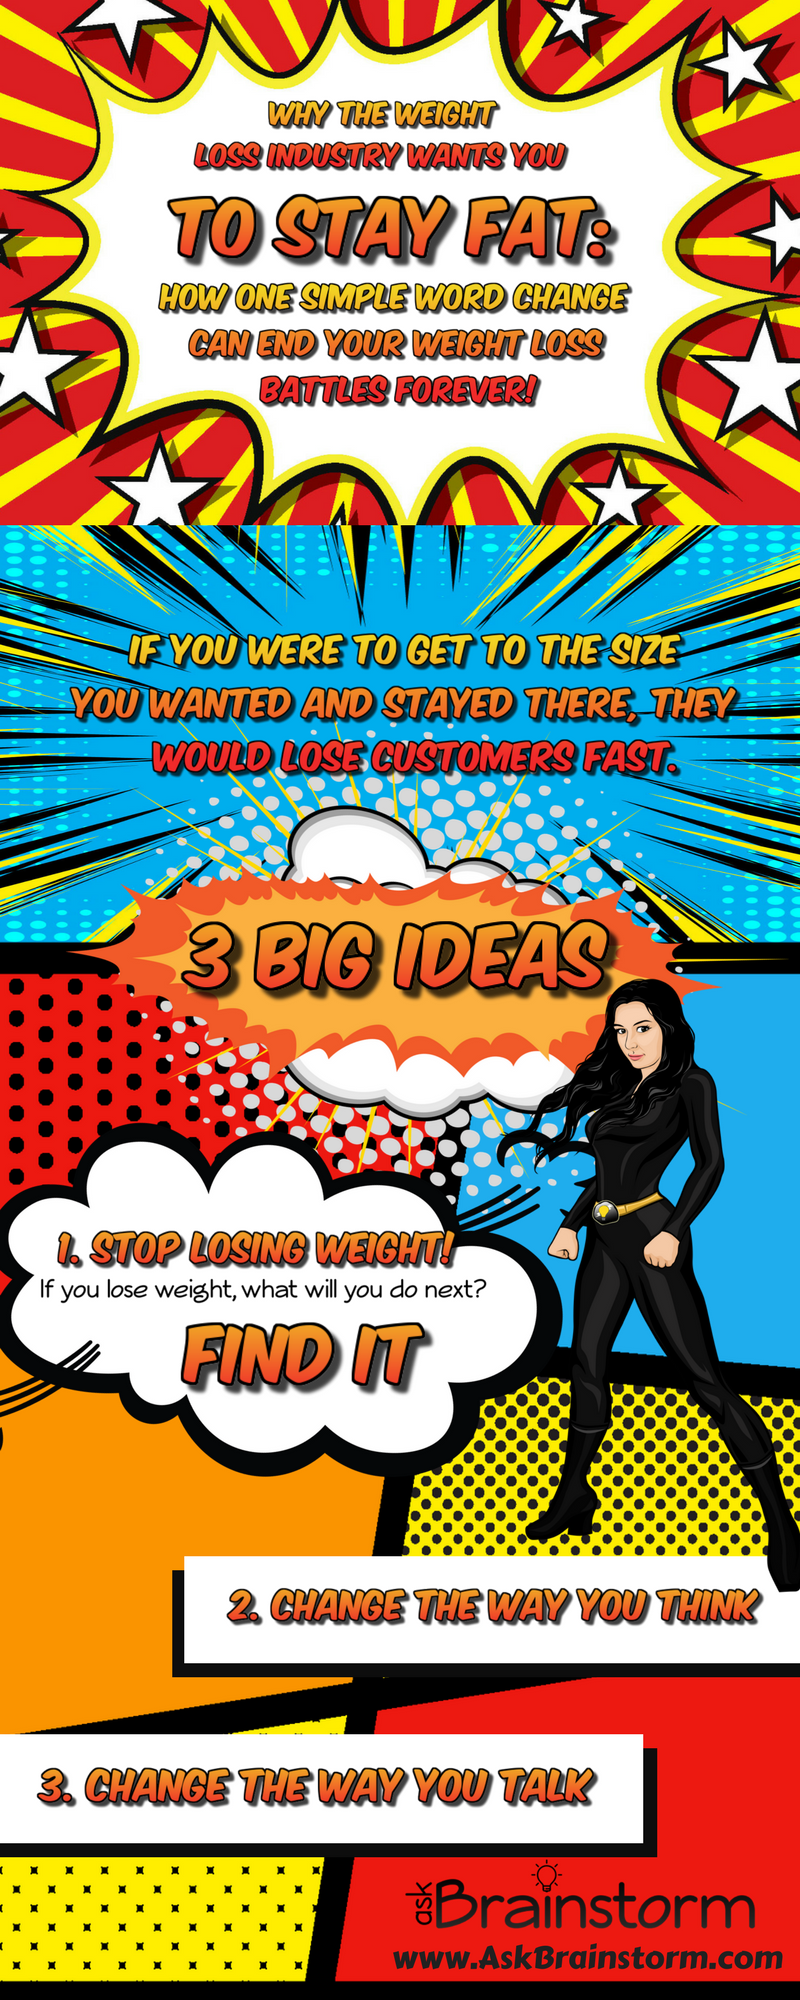 Why the weight loss industry wants you to stay fat: How one simple word change can end your weight loss battles forever! infographic